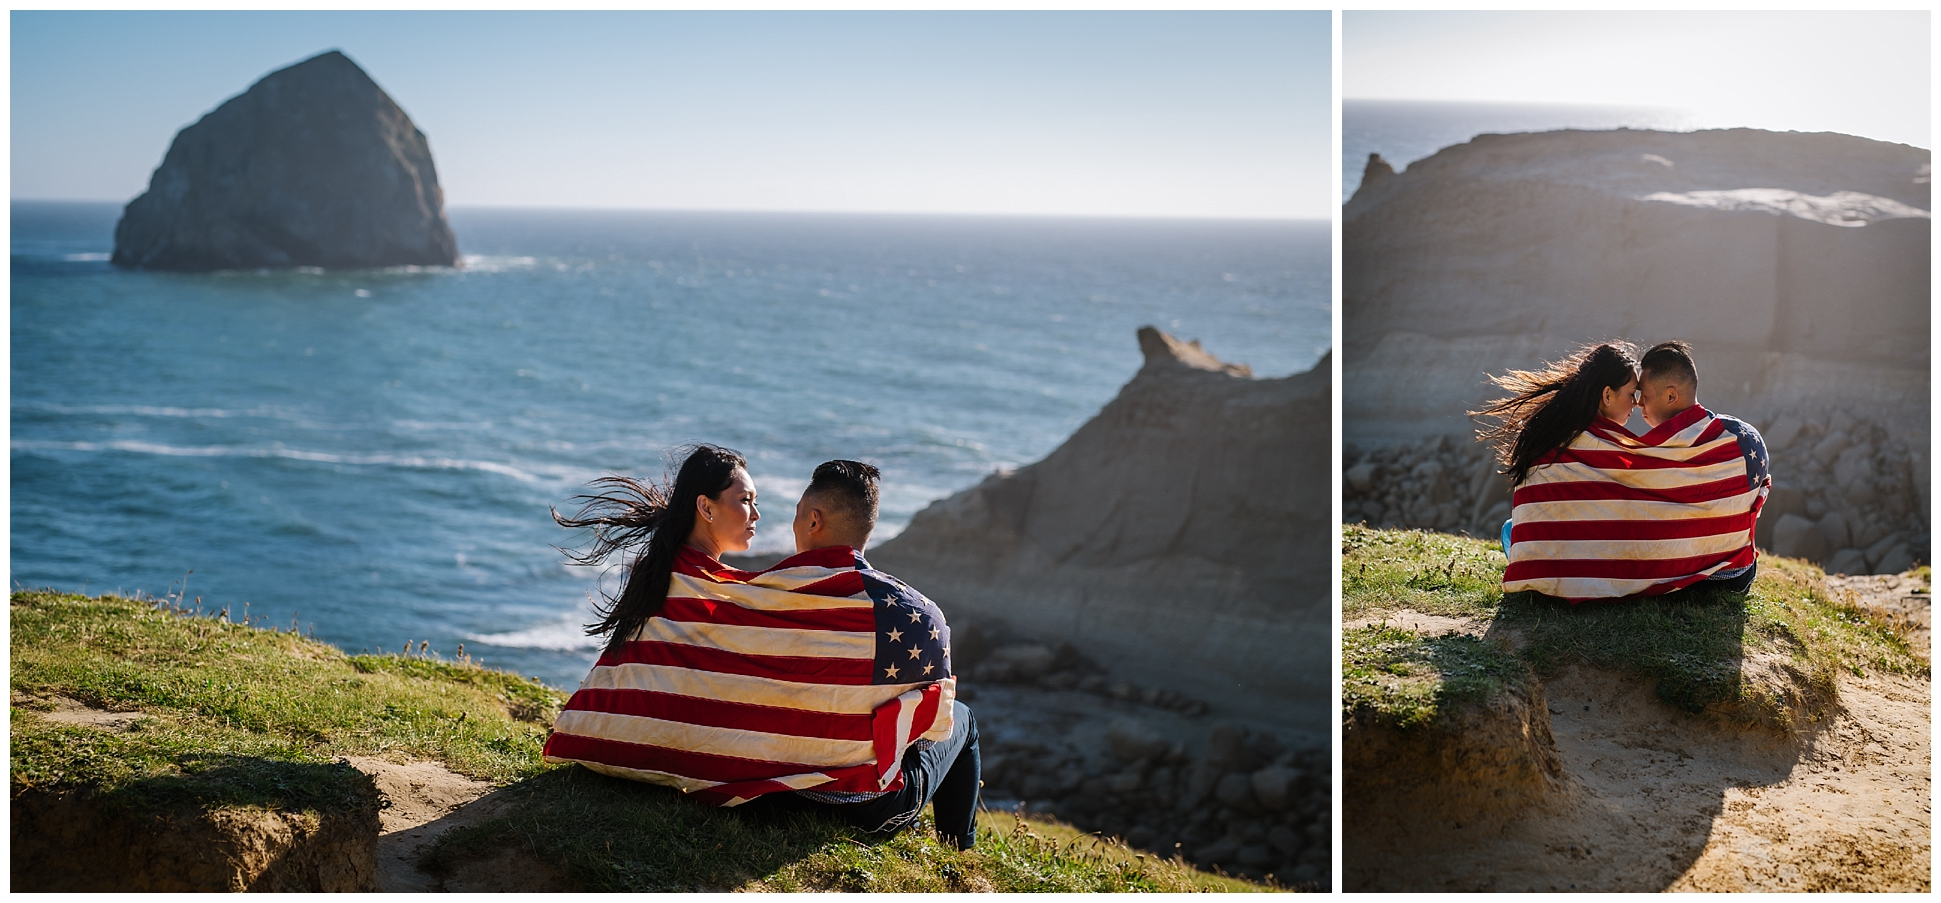 Cape-kiwanda-bridal-portrait-destination-wedding-photographer_0011.jpg